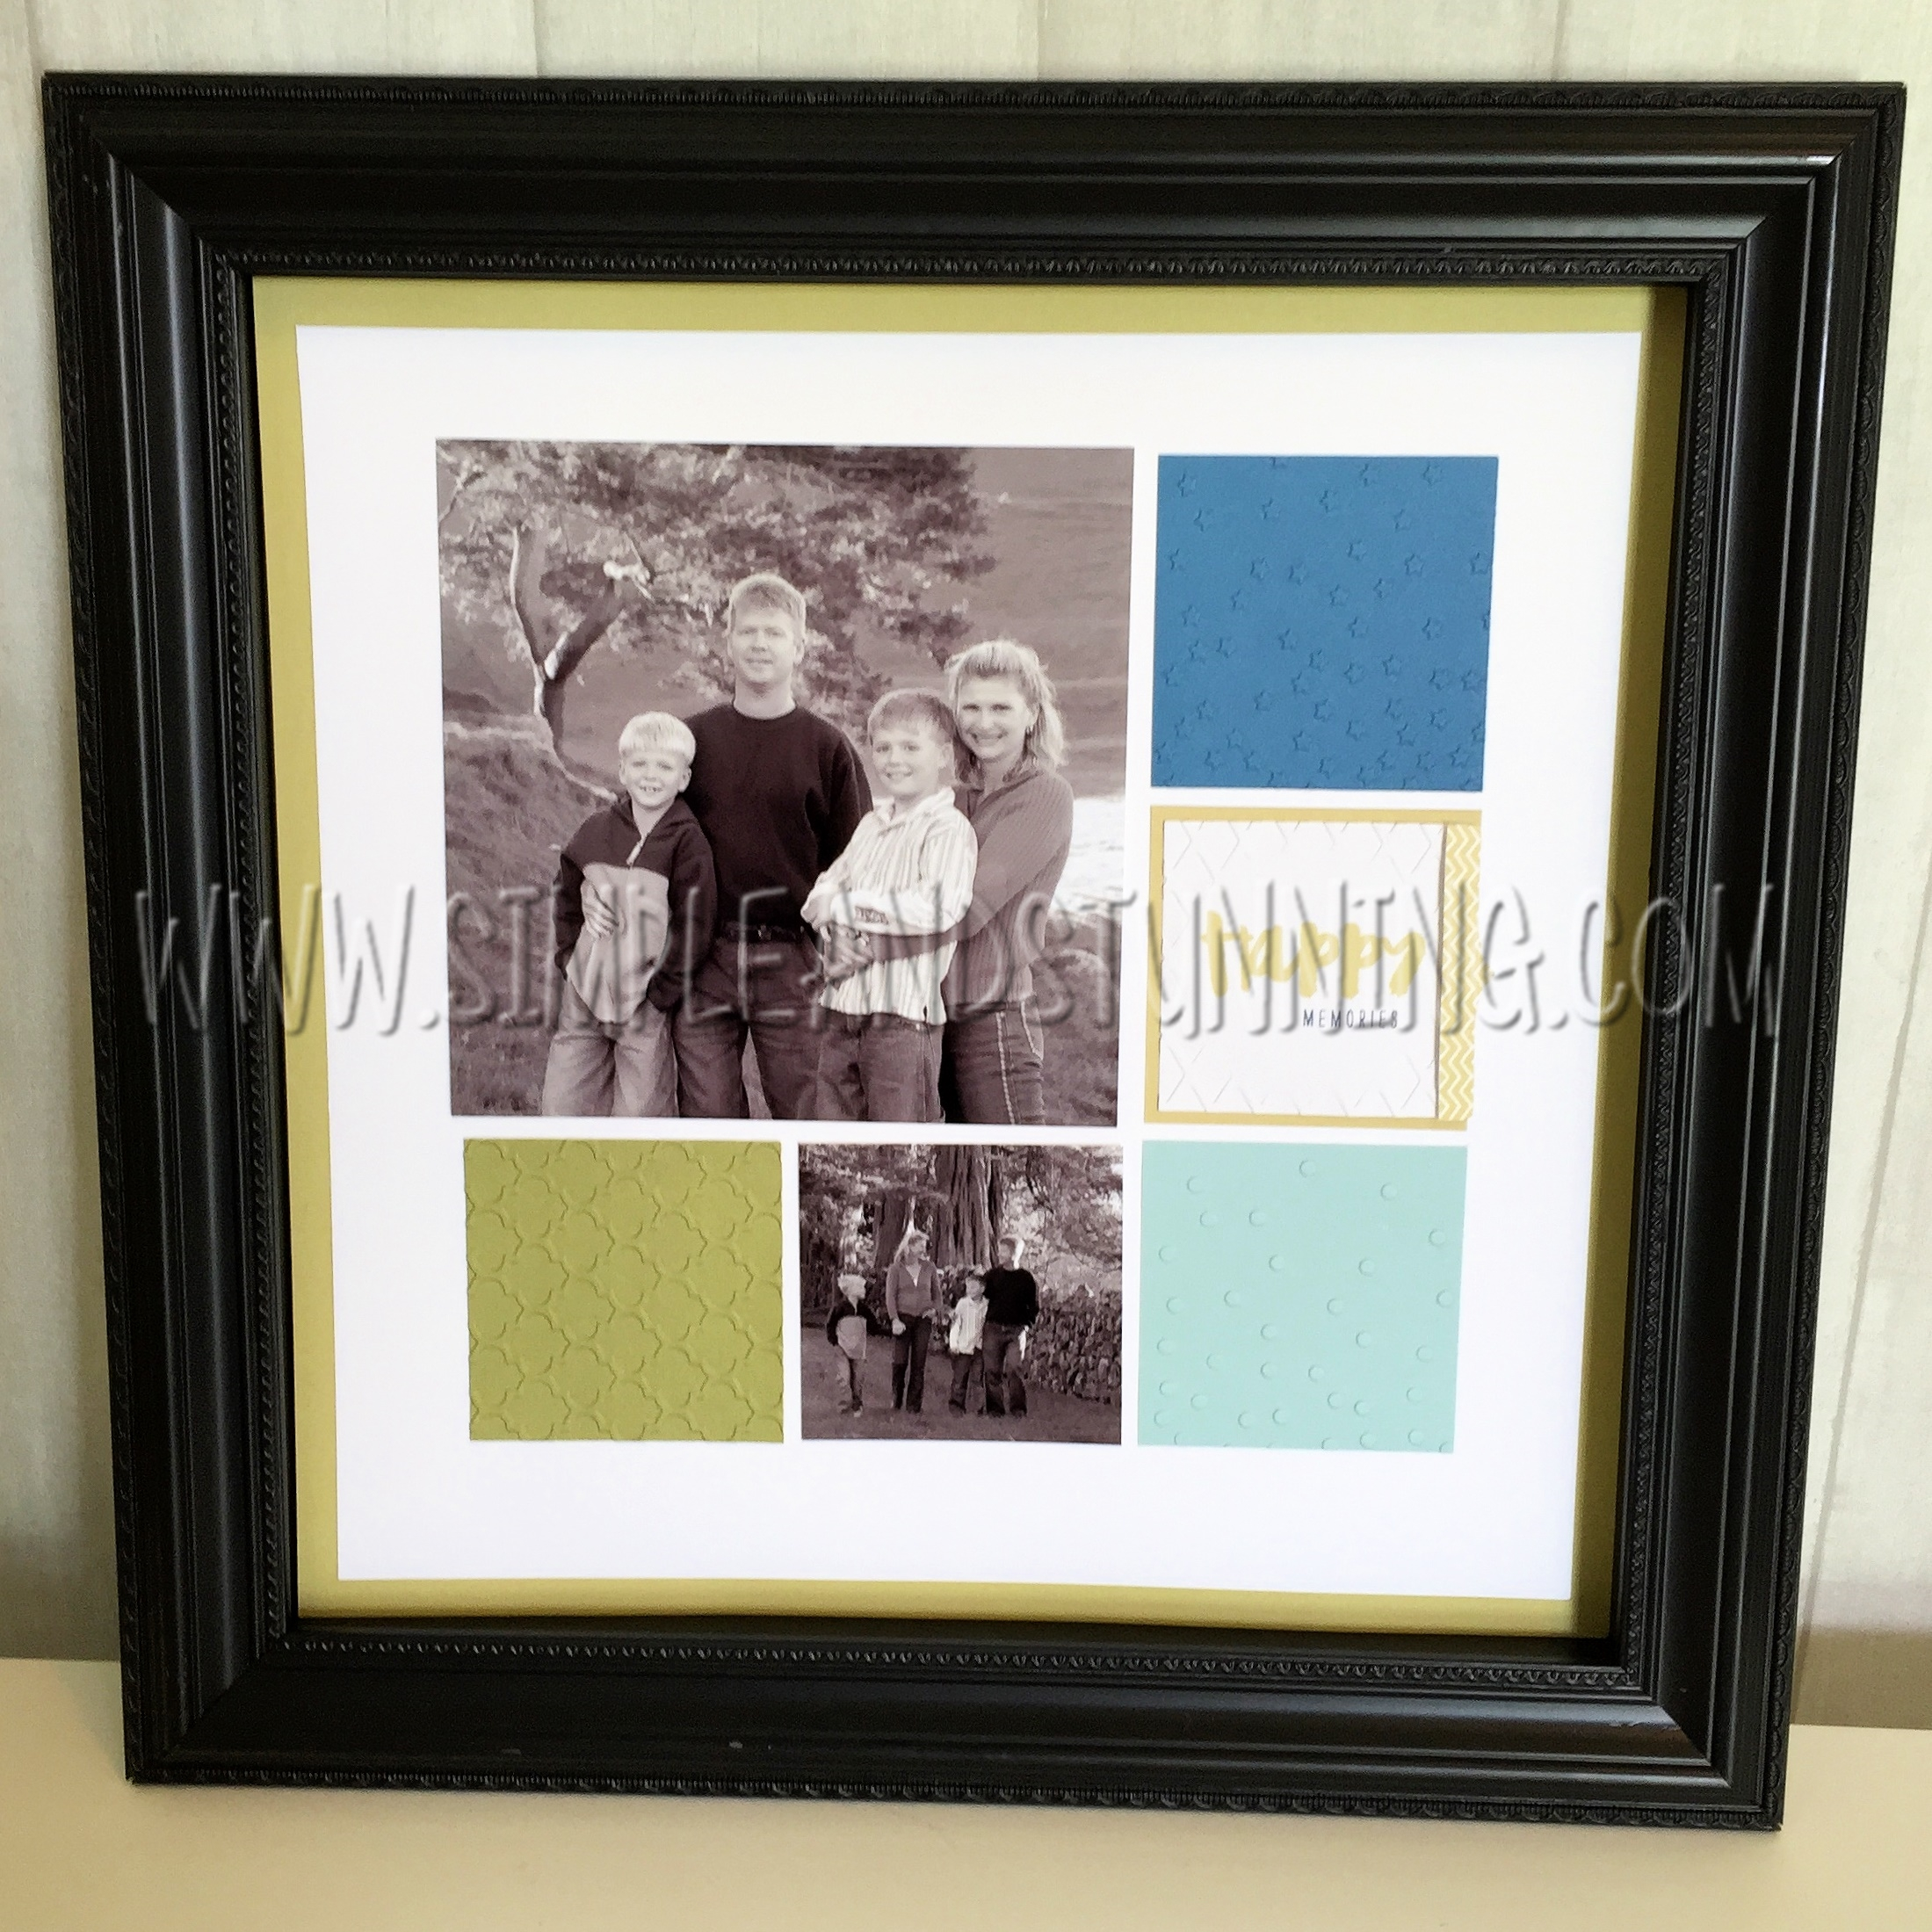 Share and celebrate your family photos in a beautiful Shadow Box Frame